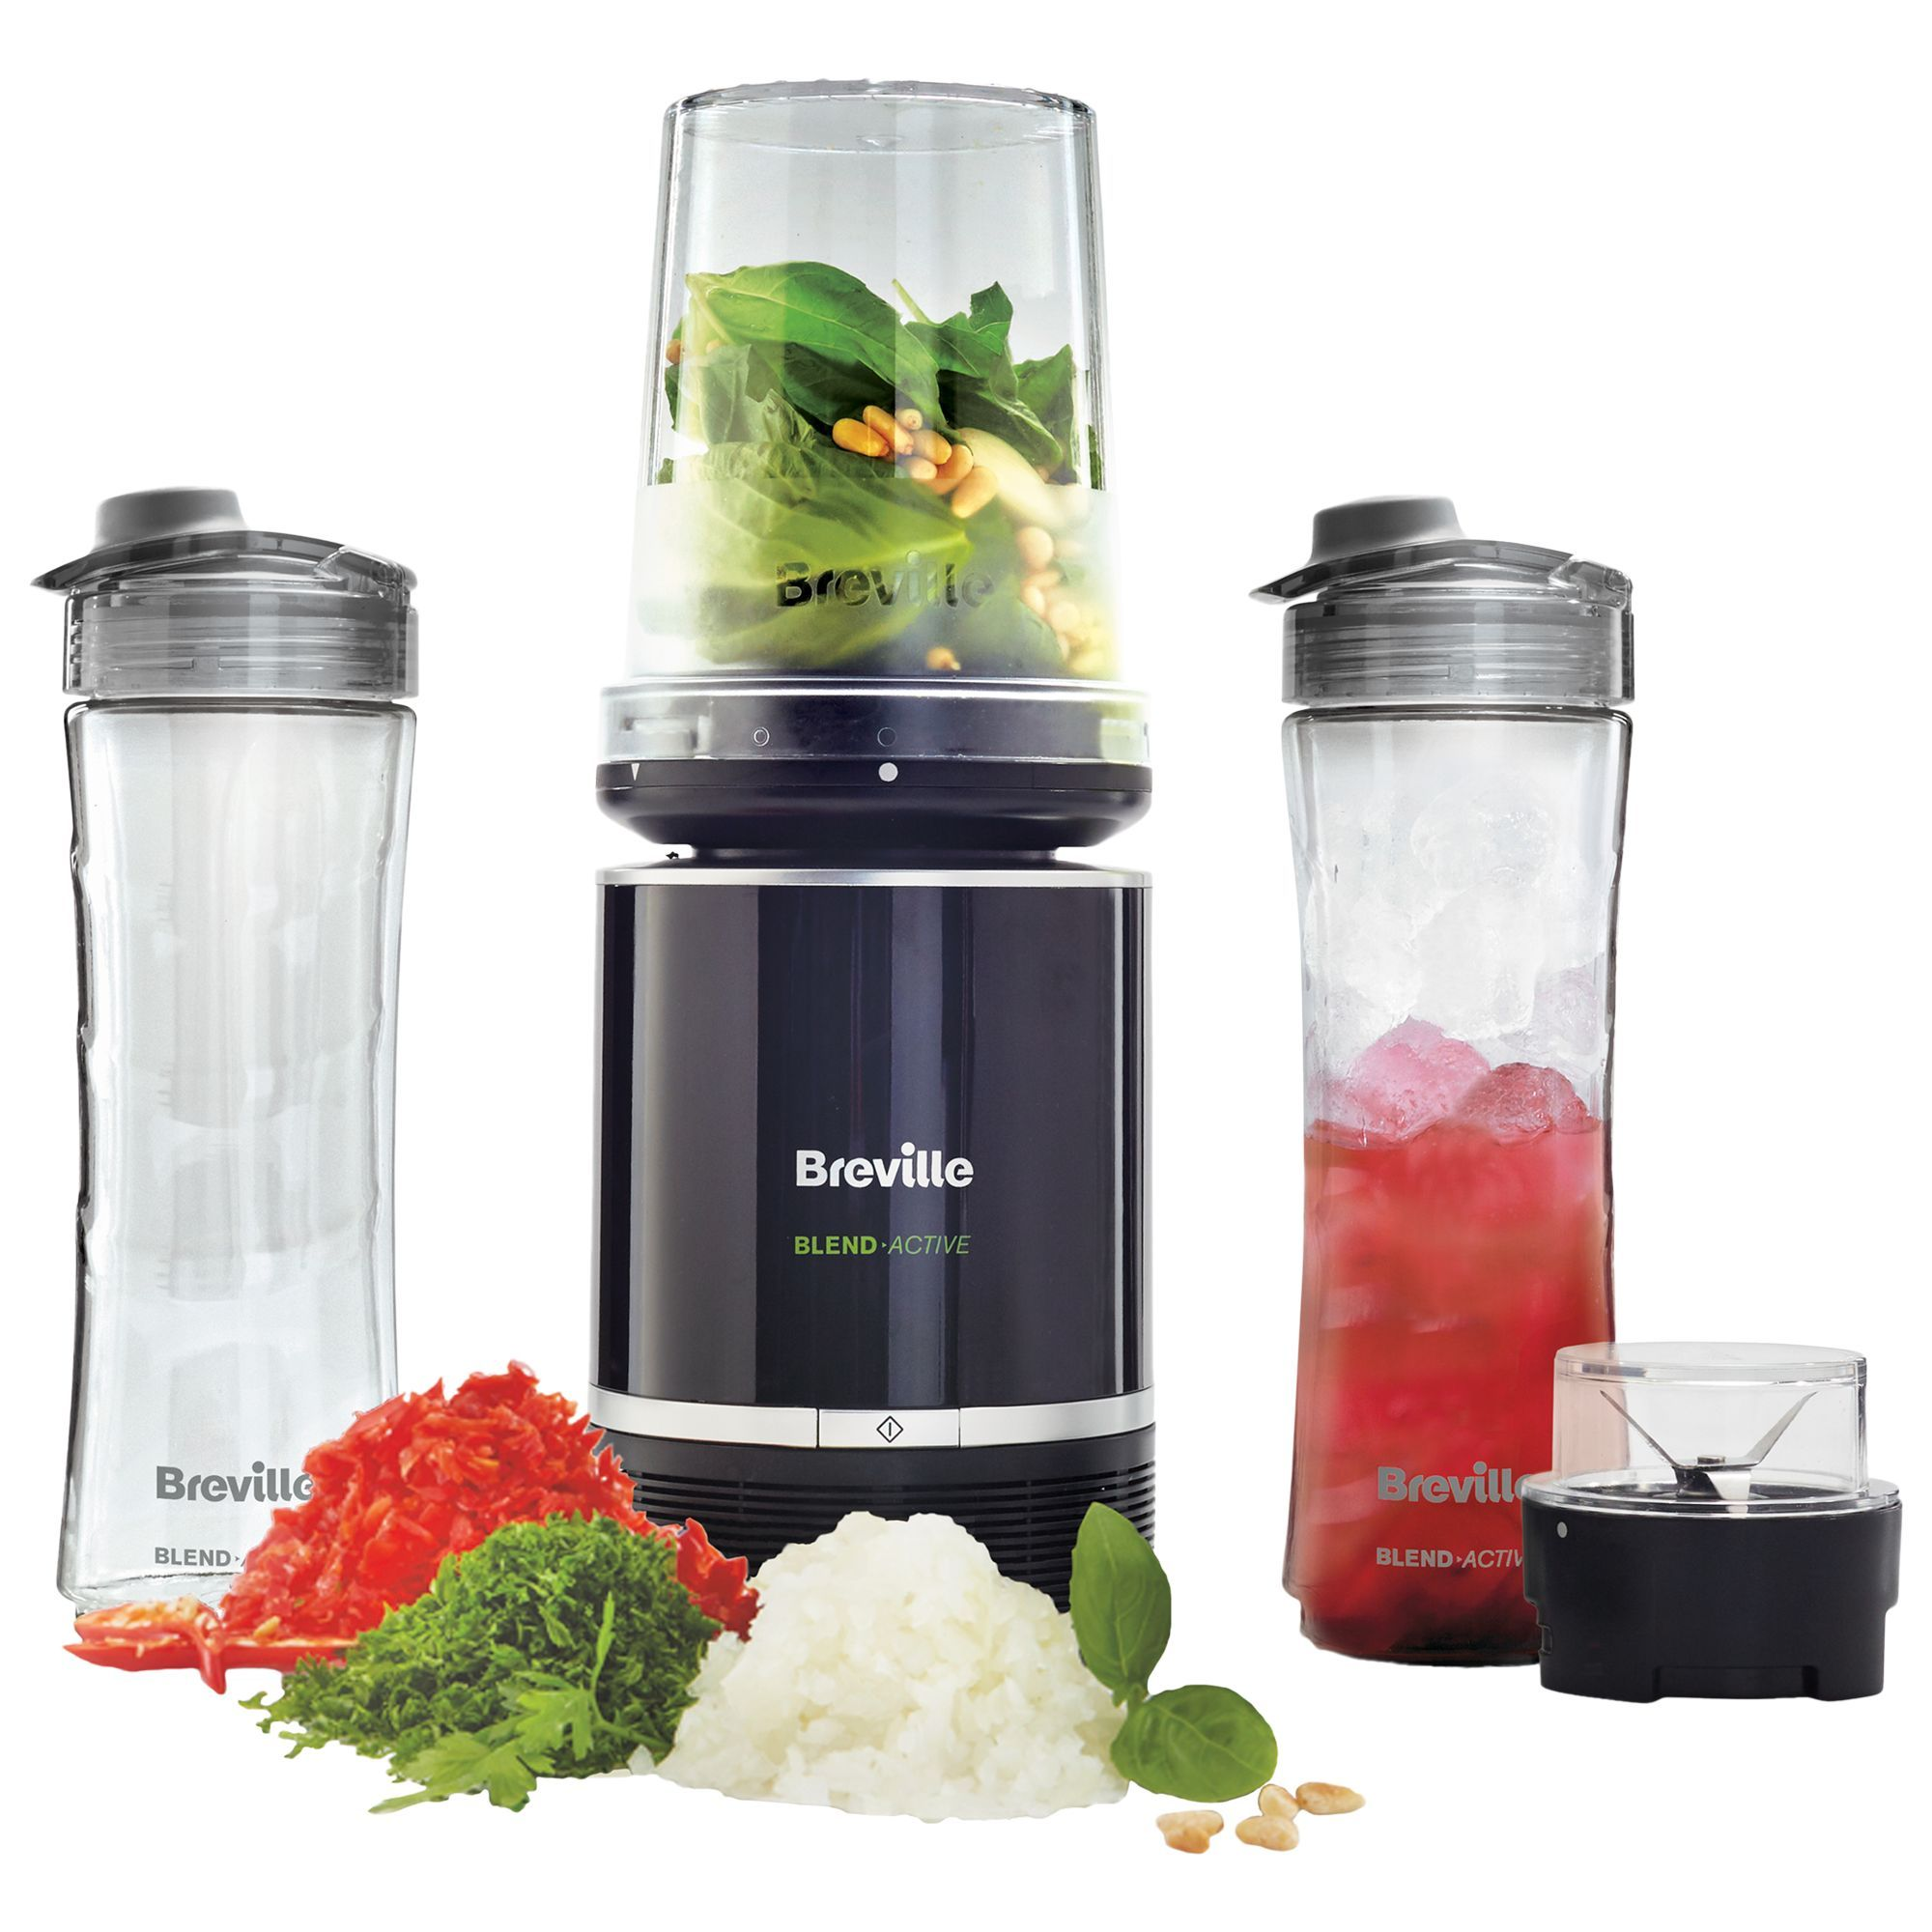 Breville Sous Chef Peel Dice Food Processor 16 Cup Williams Sonoma Breville Calls This Food Processor The Sou In 2020 Food Processor Recipes Breville Sous Chef